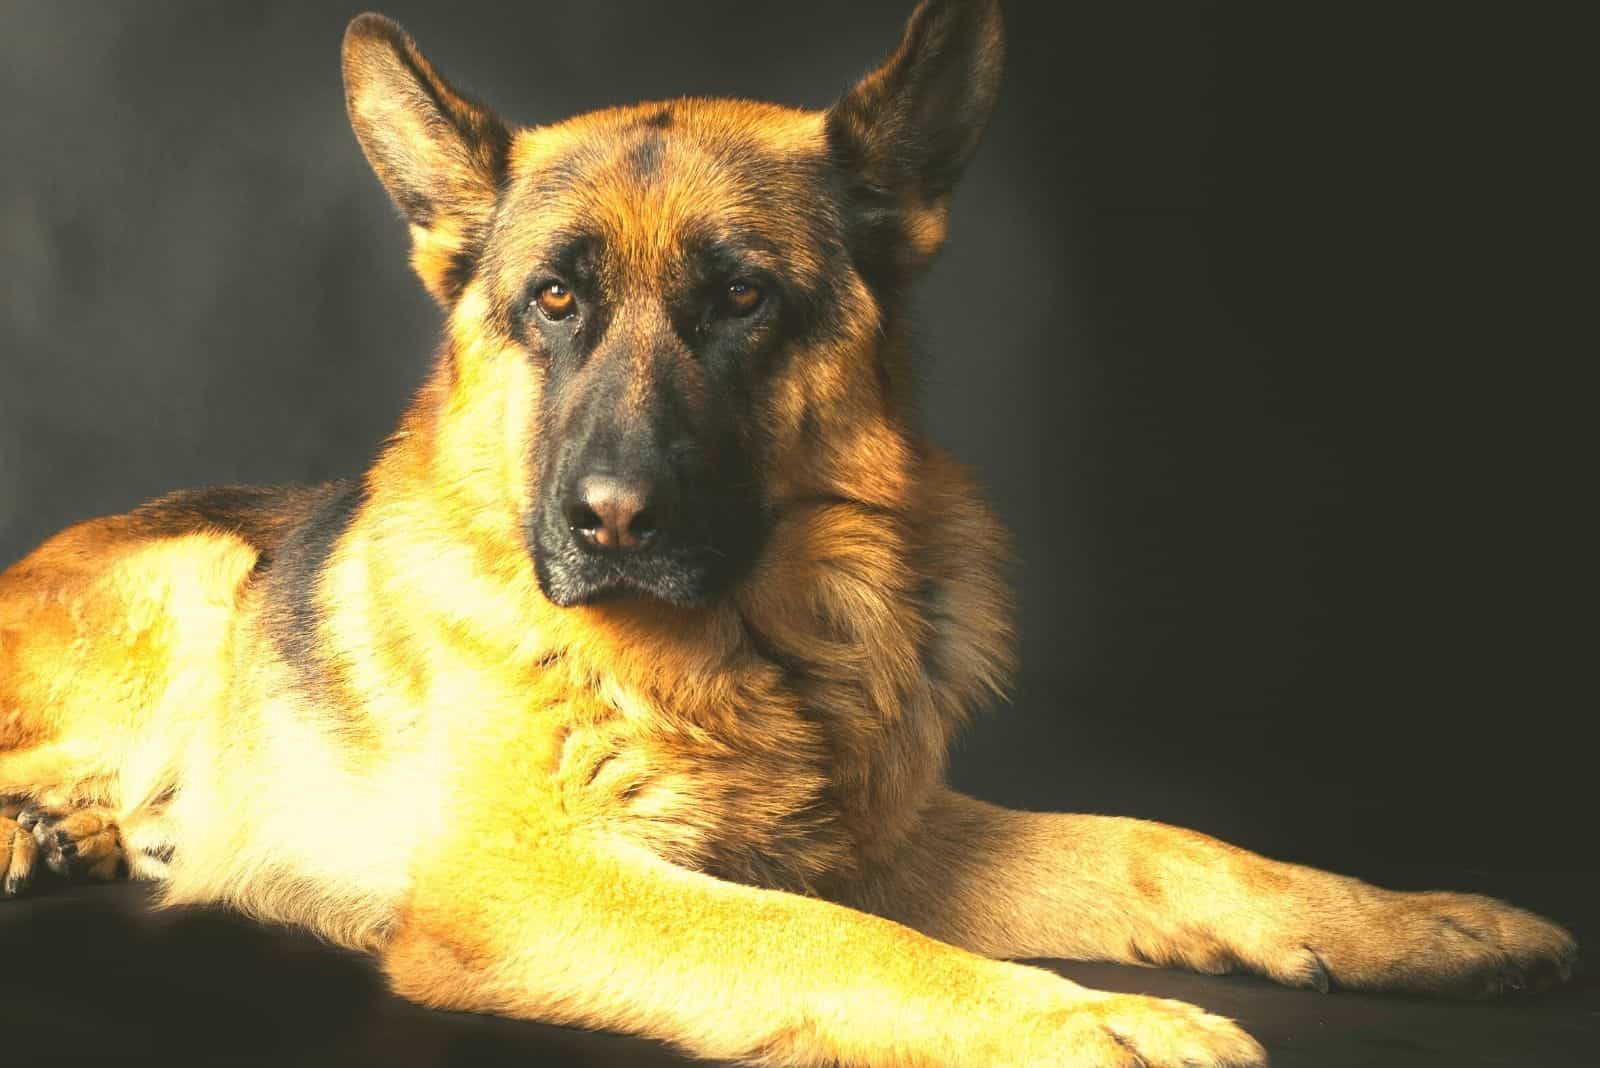 light color gsd lying down in a dark room